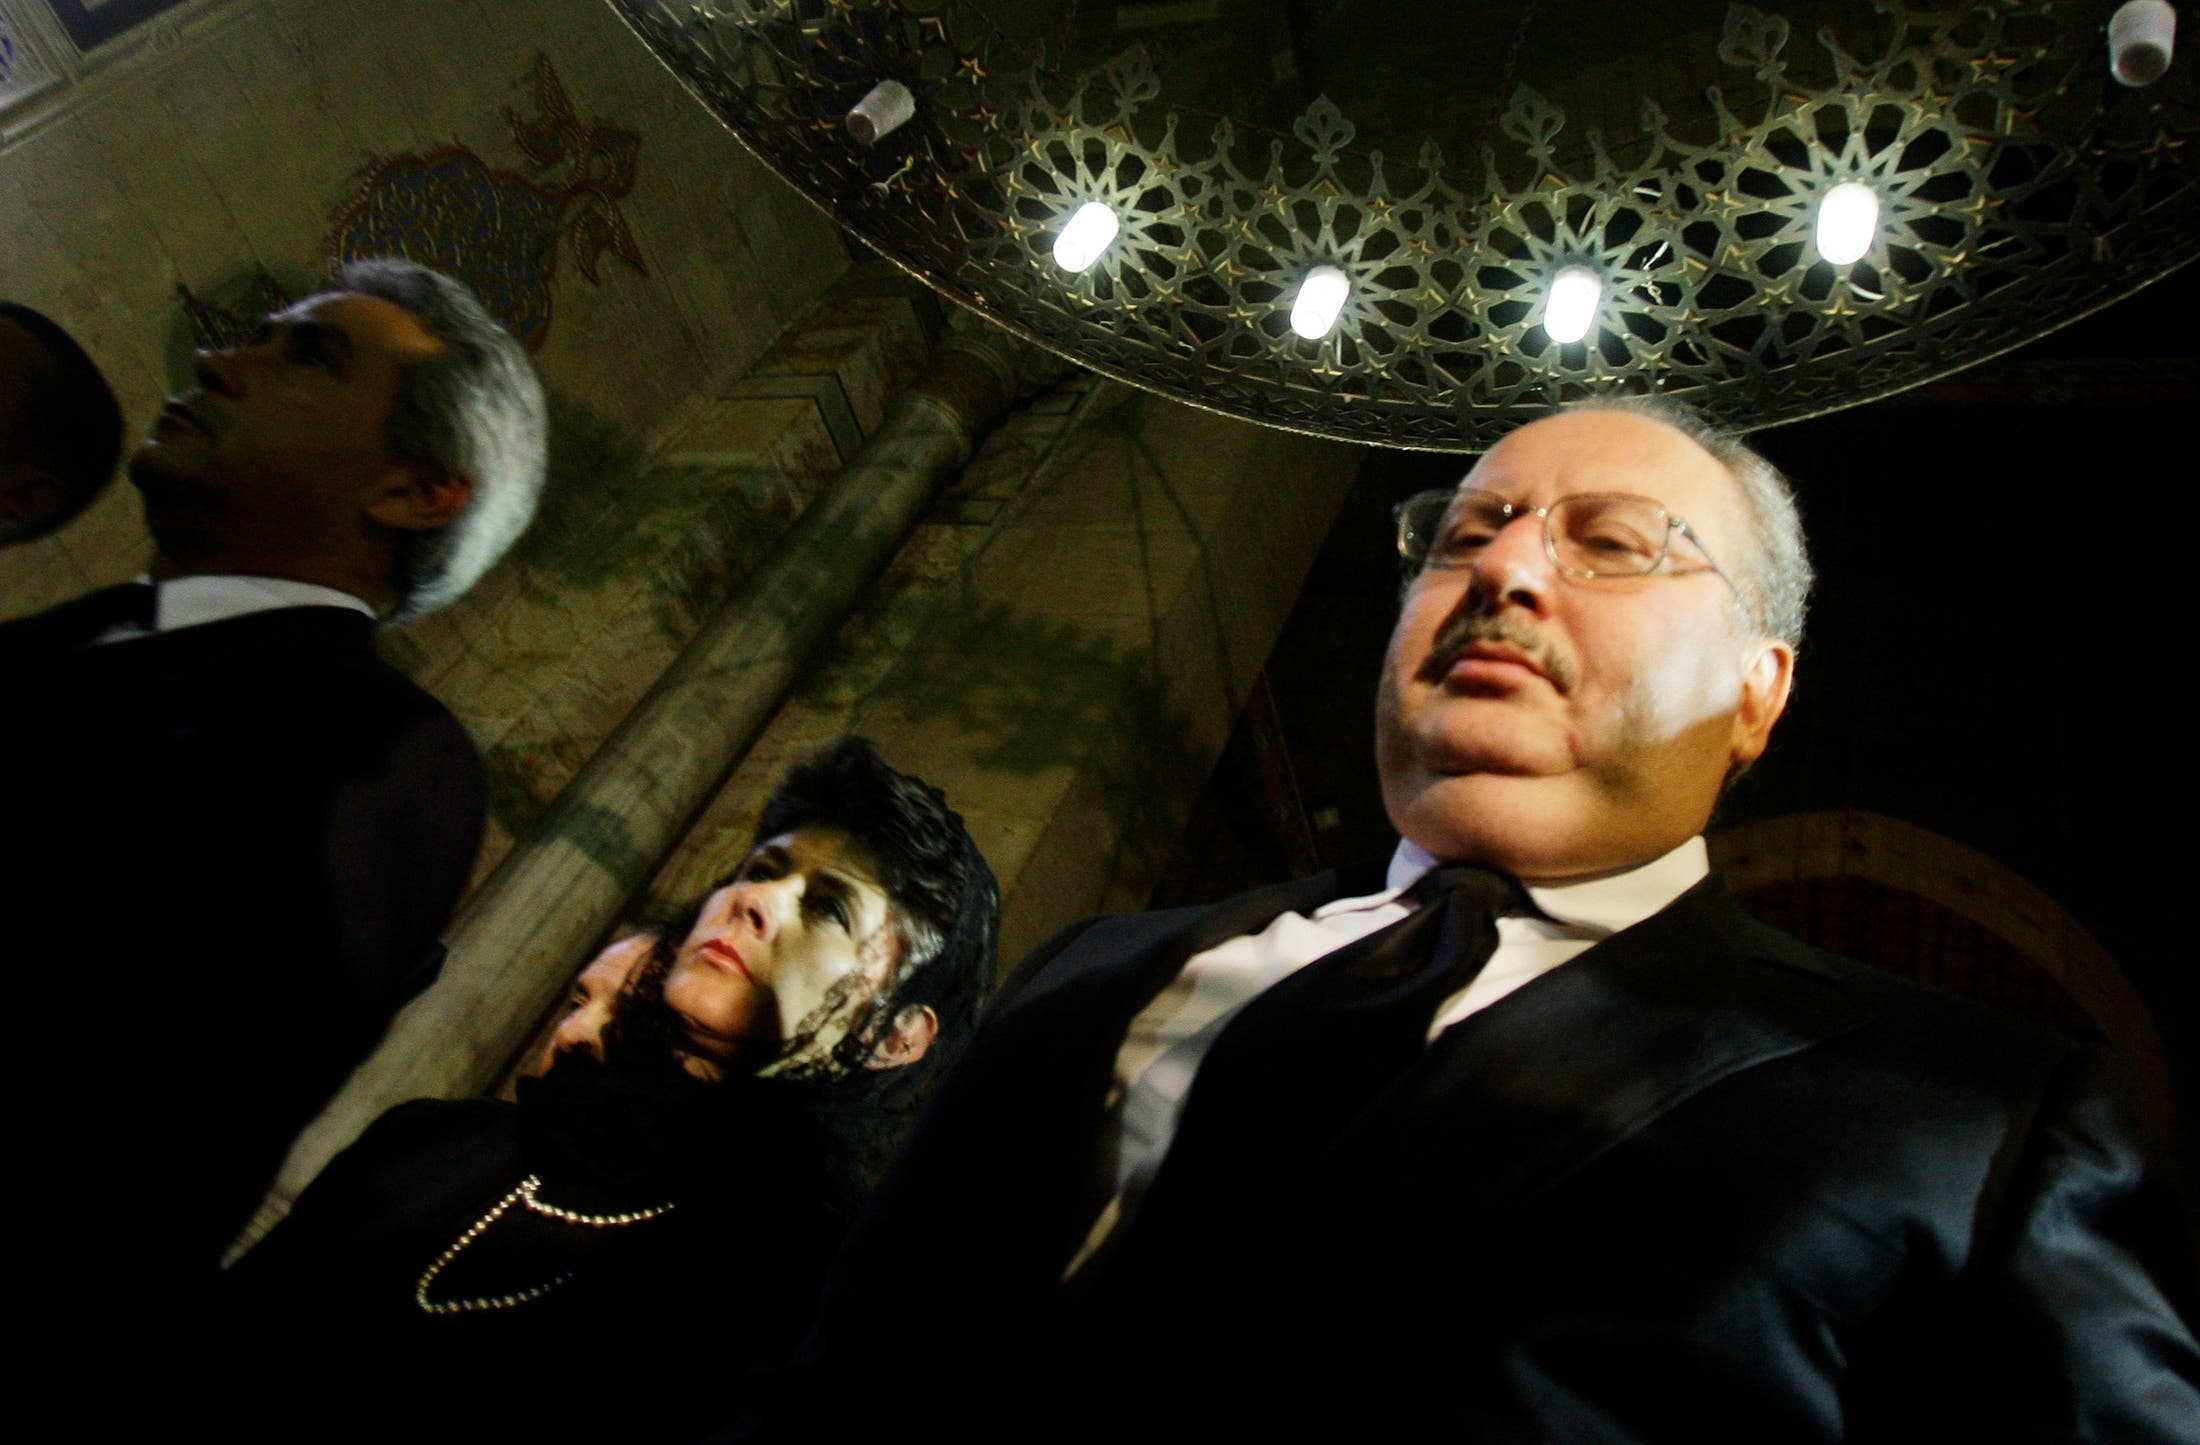 Former Egyptian King Fuad, Farouk's son with Narriman Sadek, attends the funeral of his half-sister, Ferial, in 2009 (File photo: Reuters)